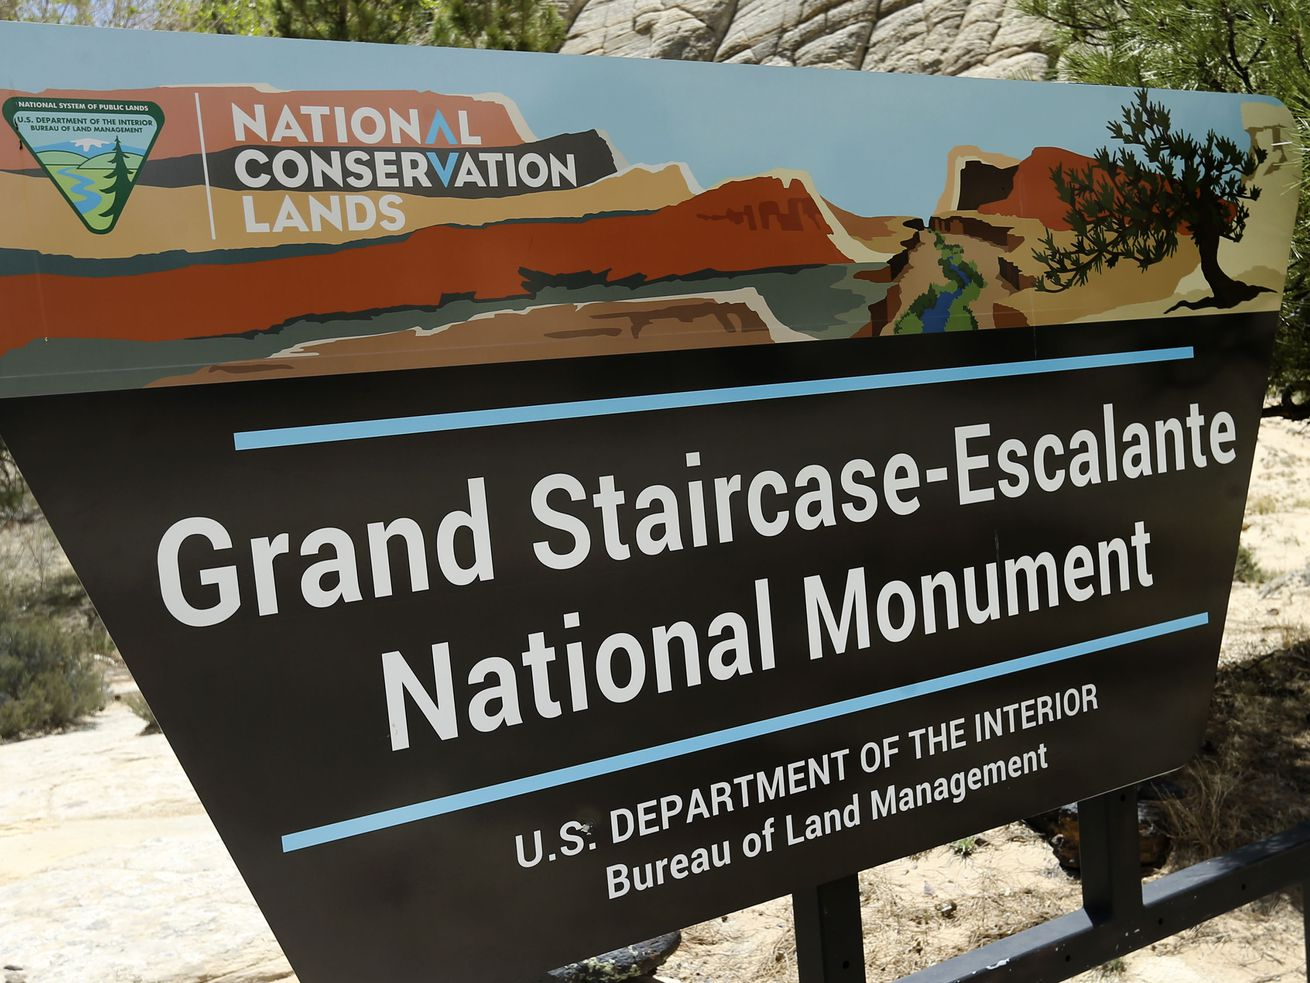 A sign at entrance of the Grand Staircase-Escalante National Monument